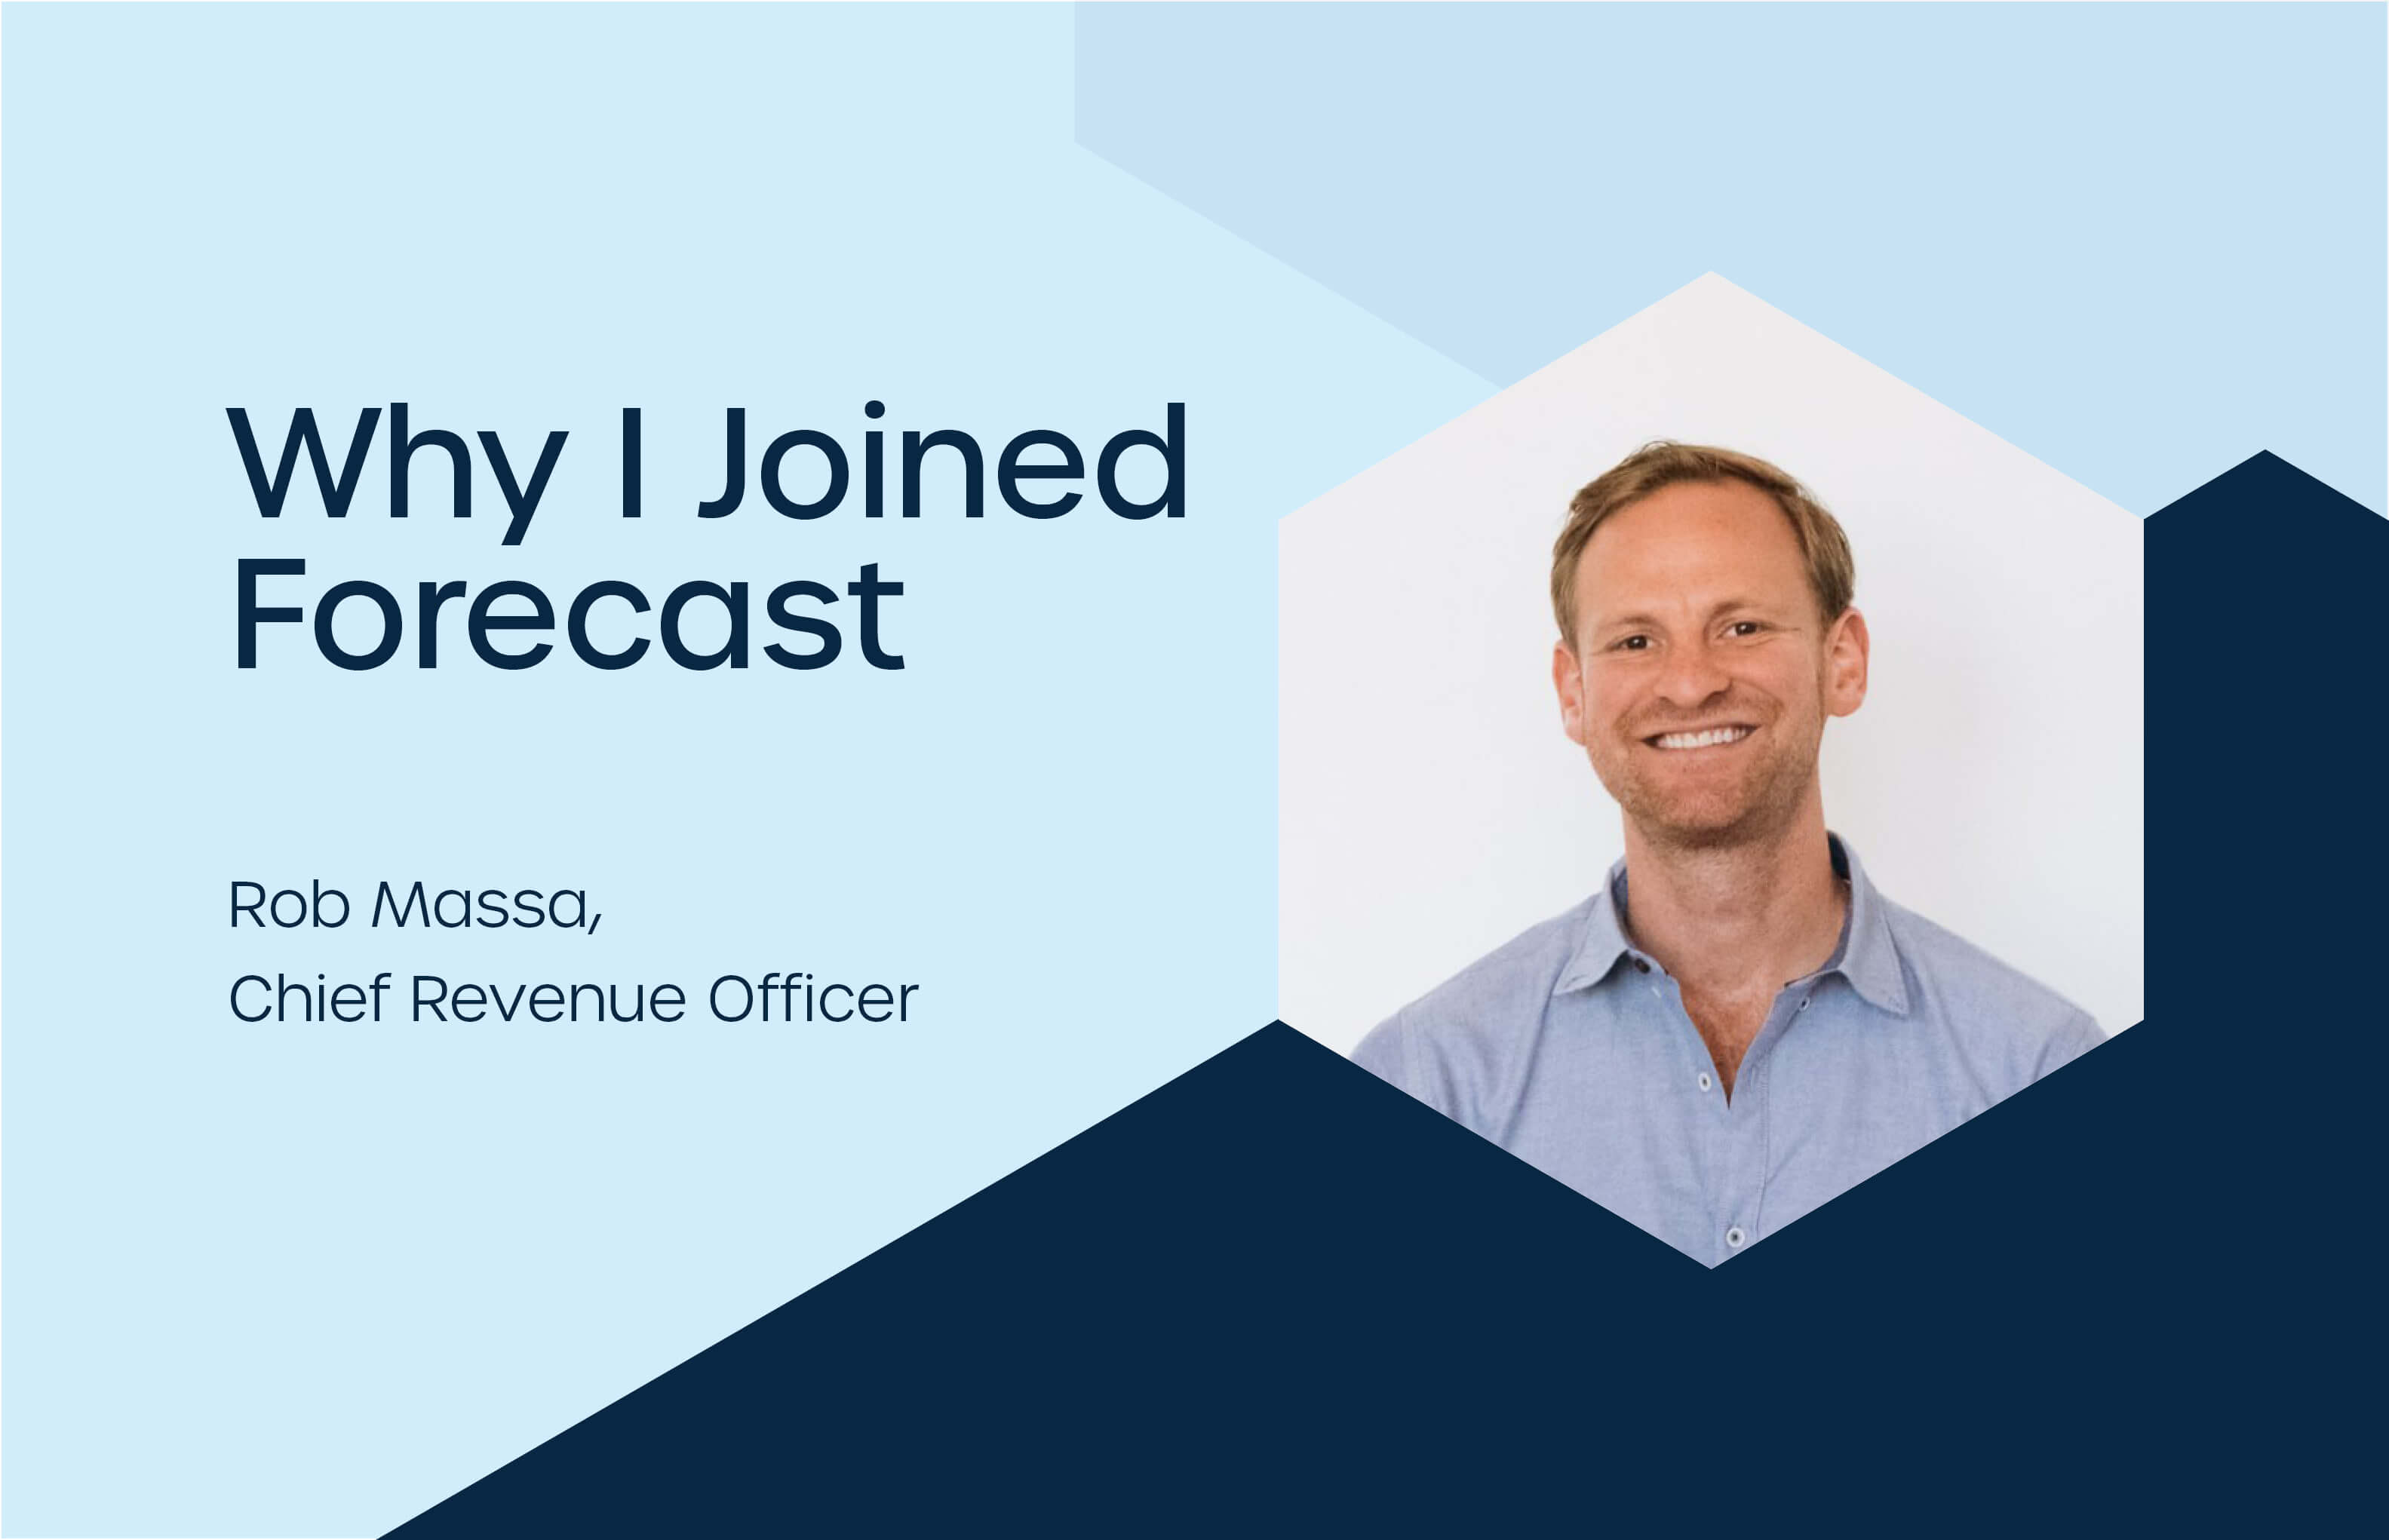 Rob Massa, Chief Revenue Officer at Forecast